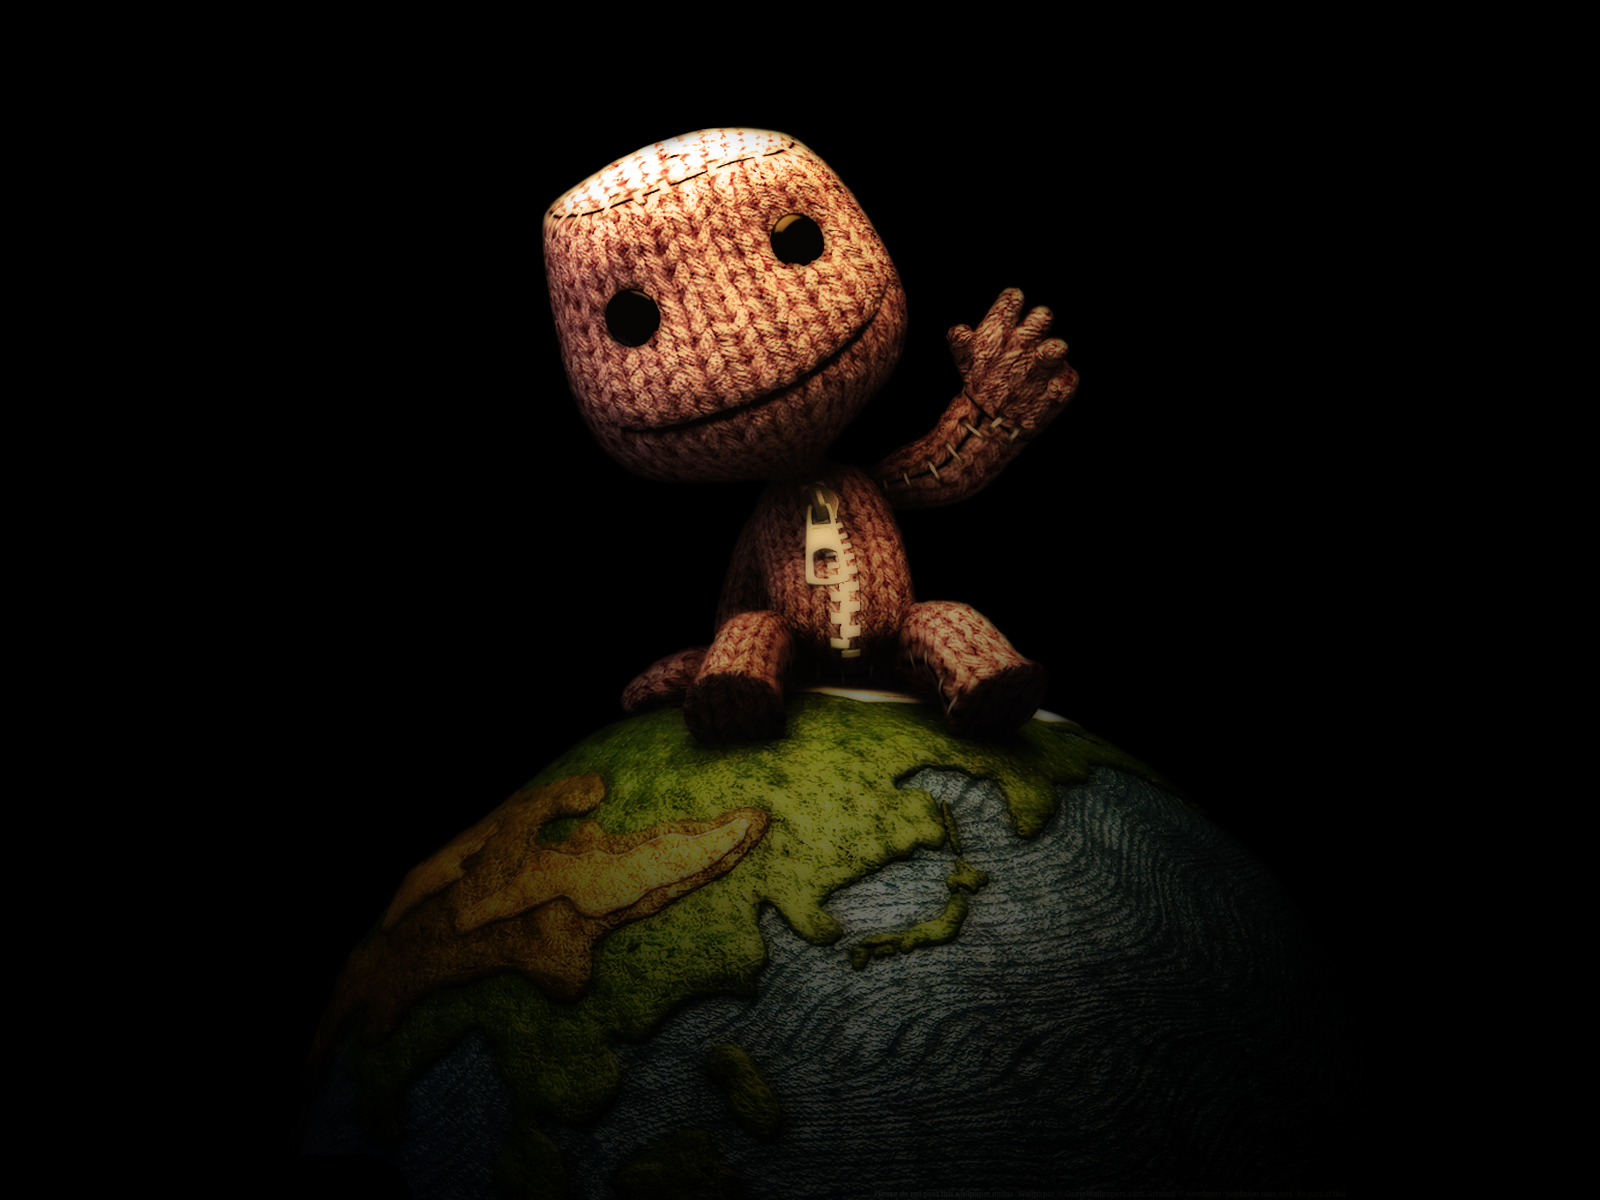 Little Big Planet Wallpaper: Wallpaper, Avatars + More